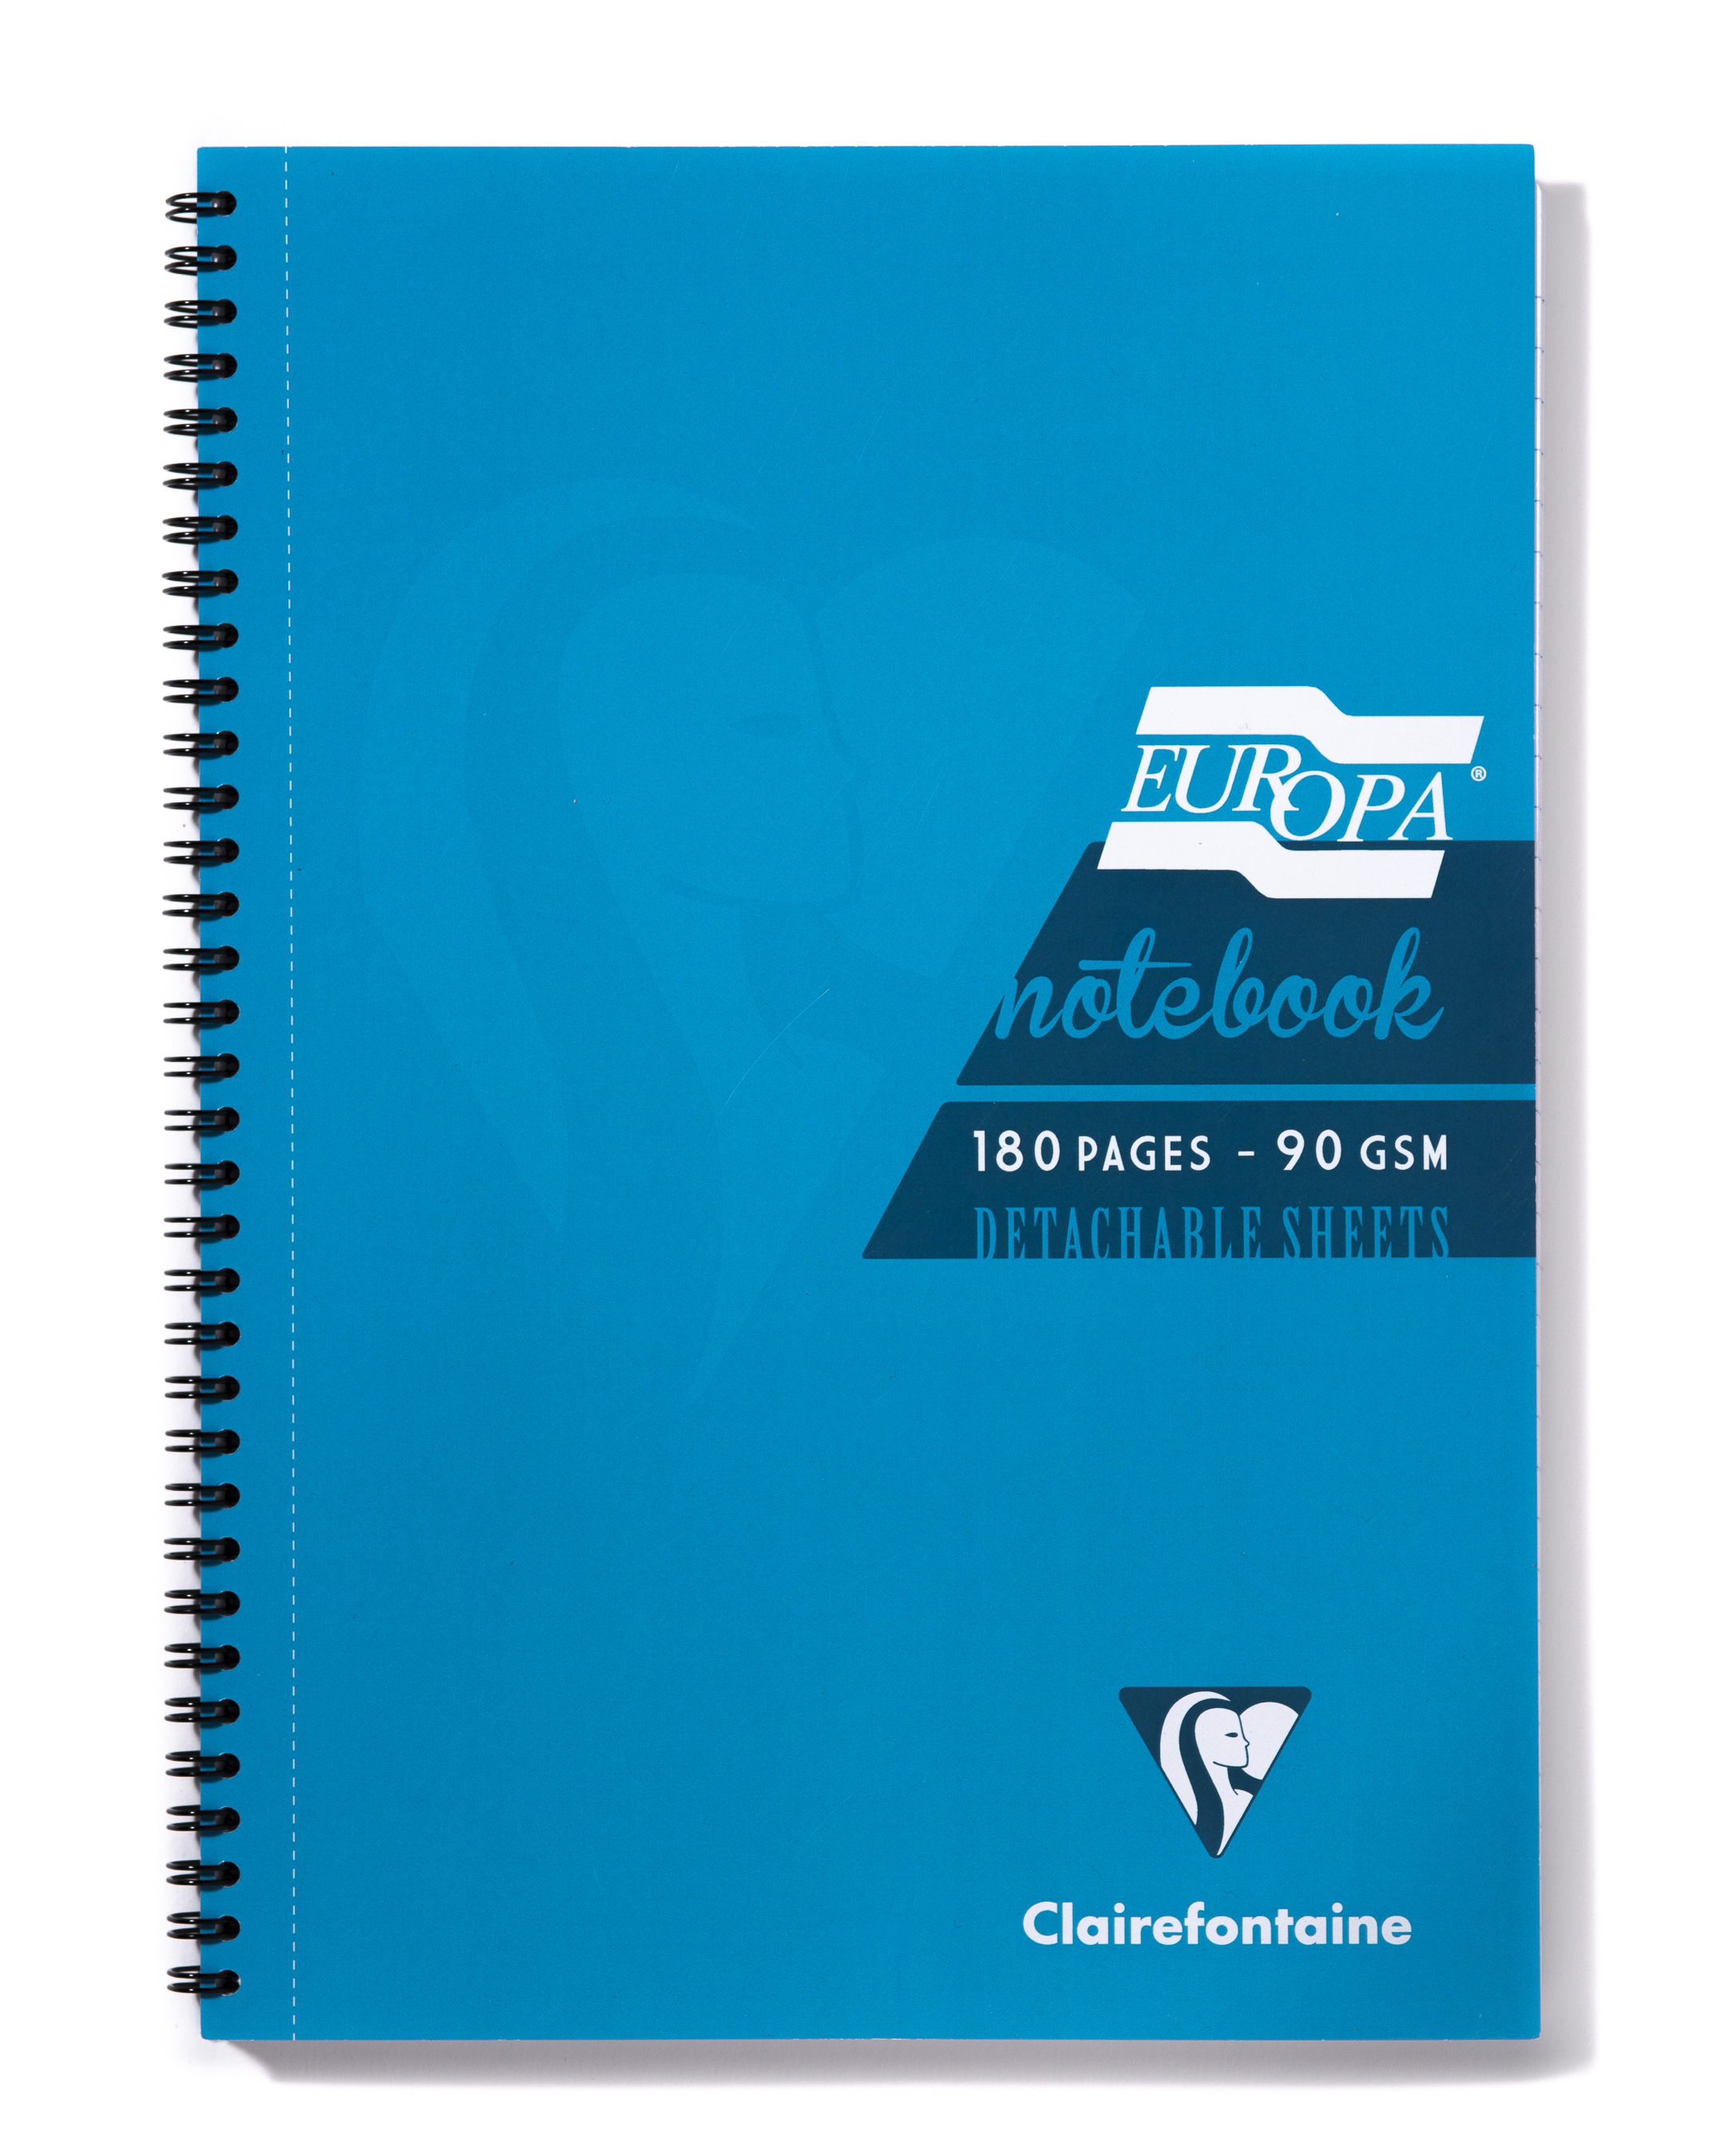 Europa A5 Sidebound Notebook Turquoise PK5